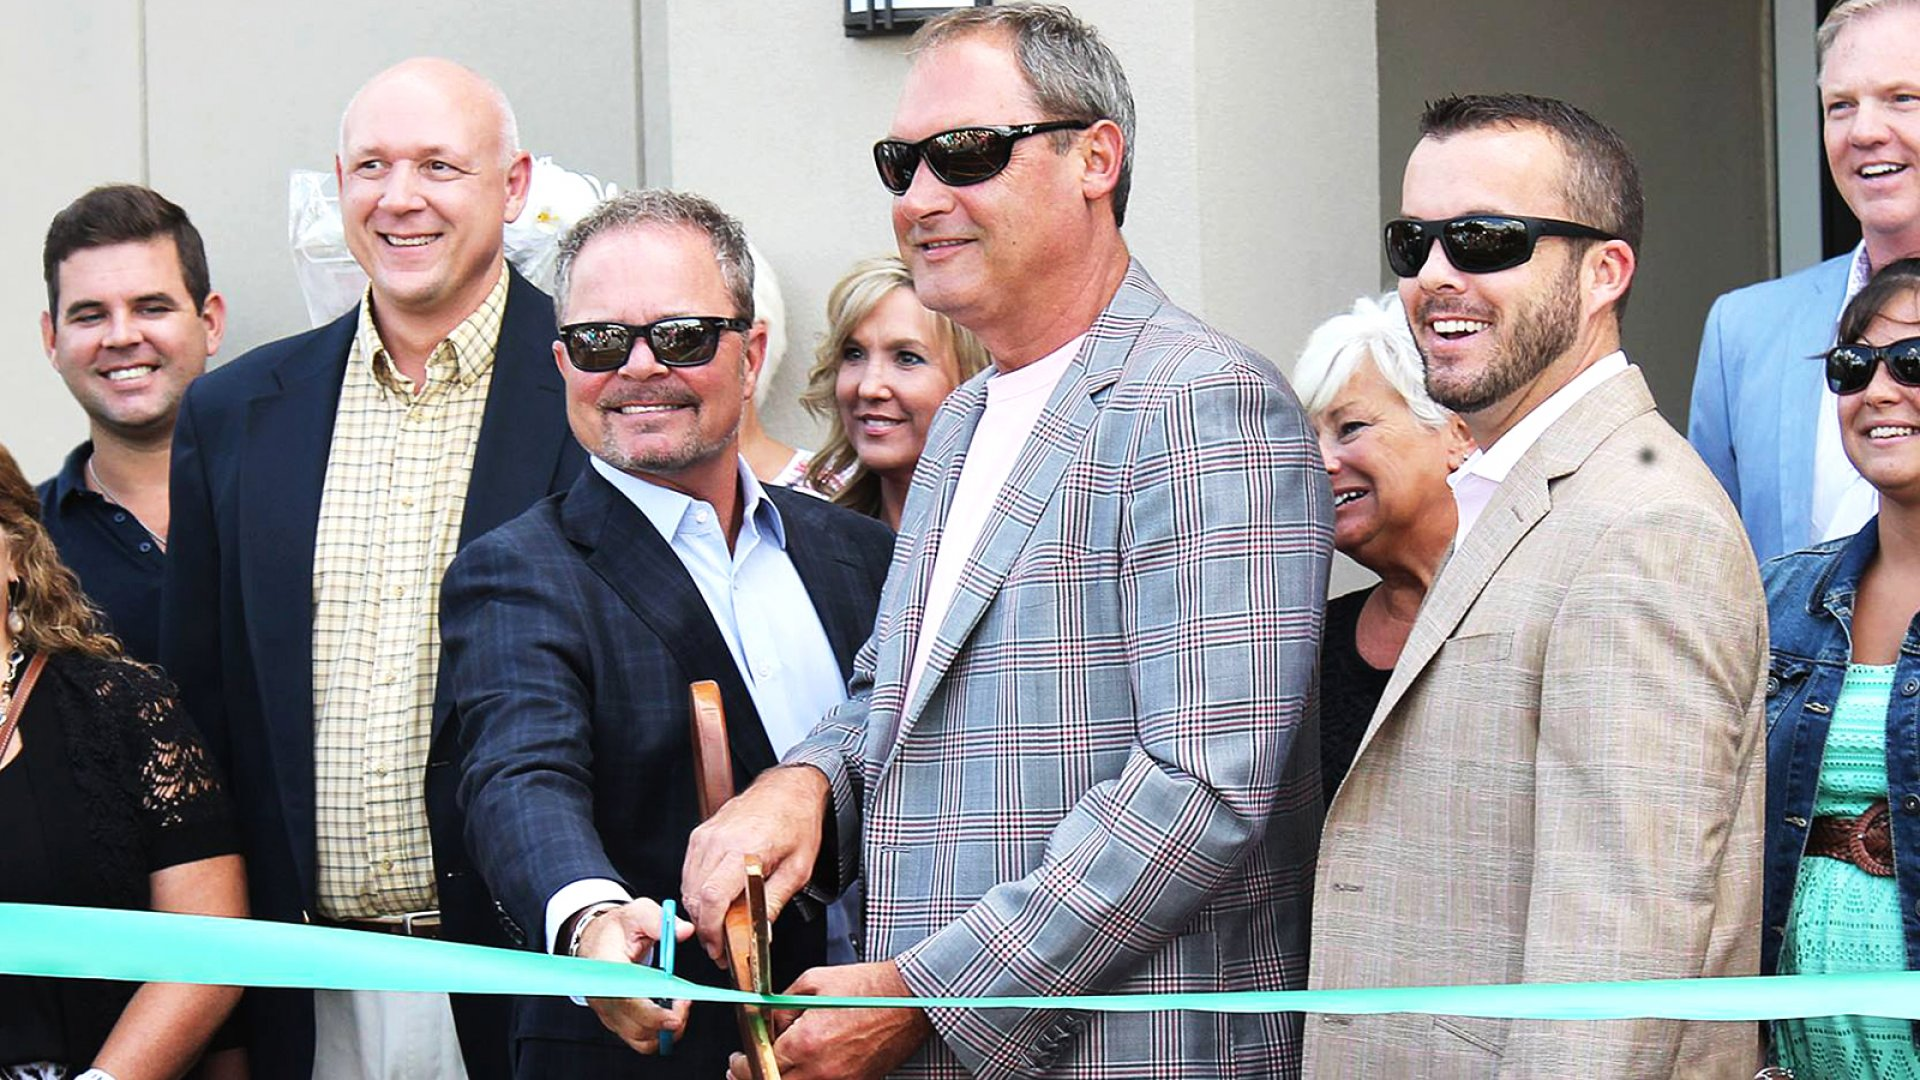 Transportation Impact founders Keith Byrd (left) and Travis Burt at Transportation Impact's ribbon cutting.